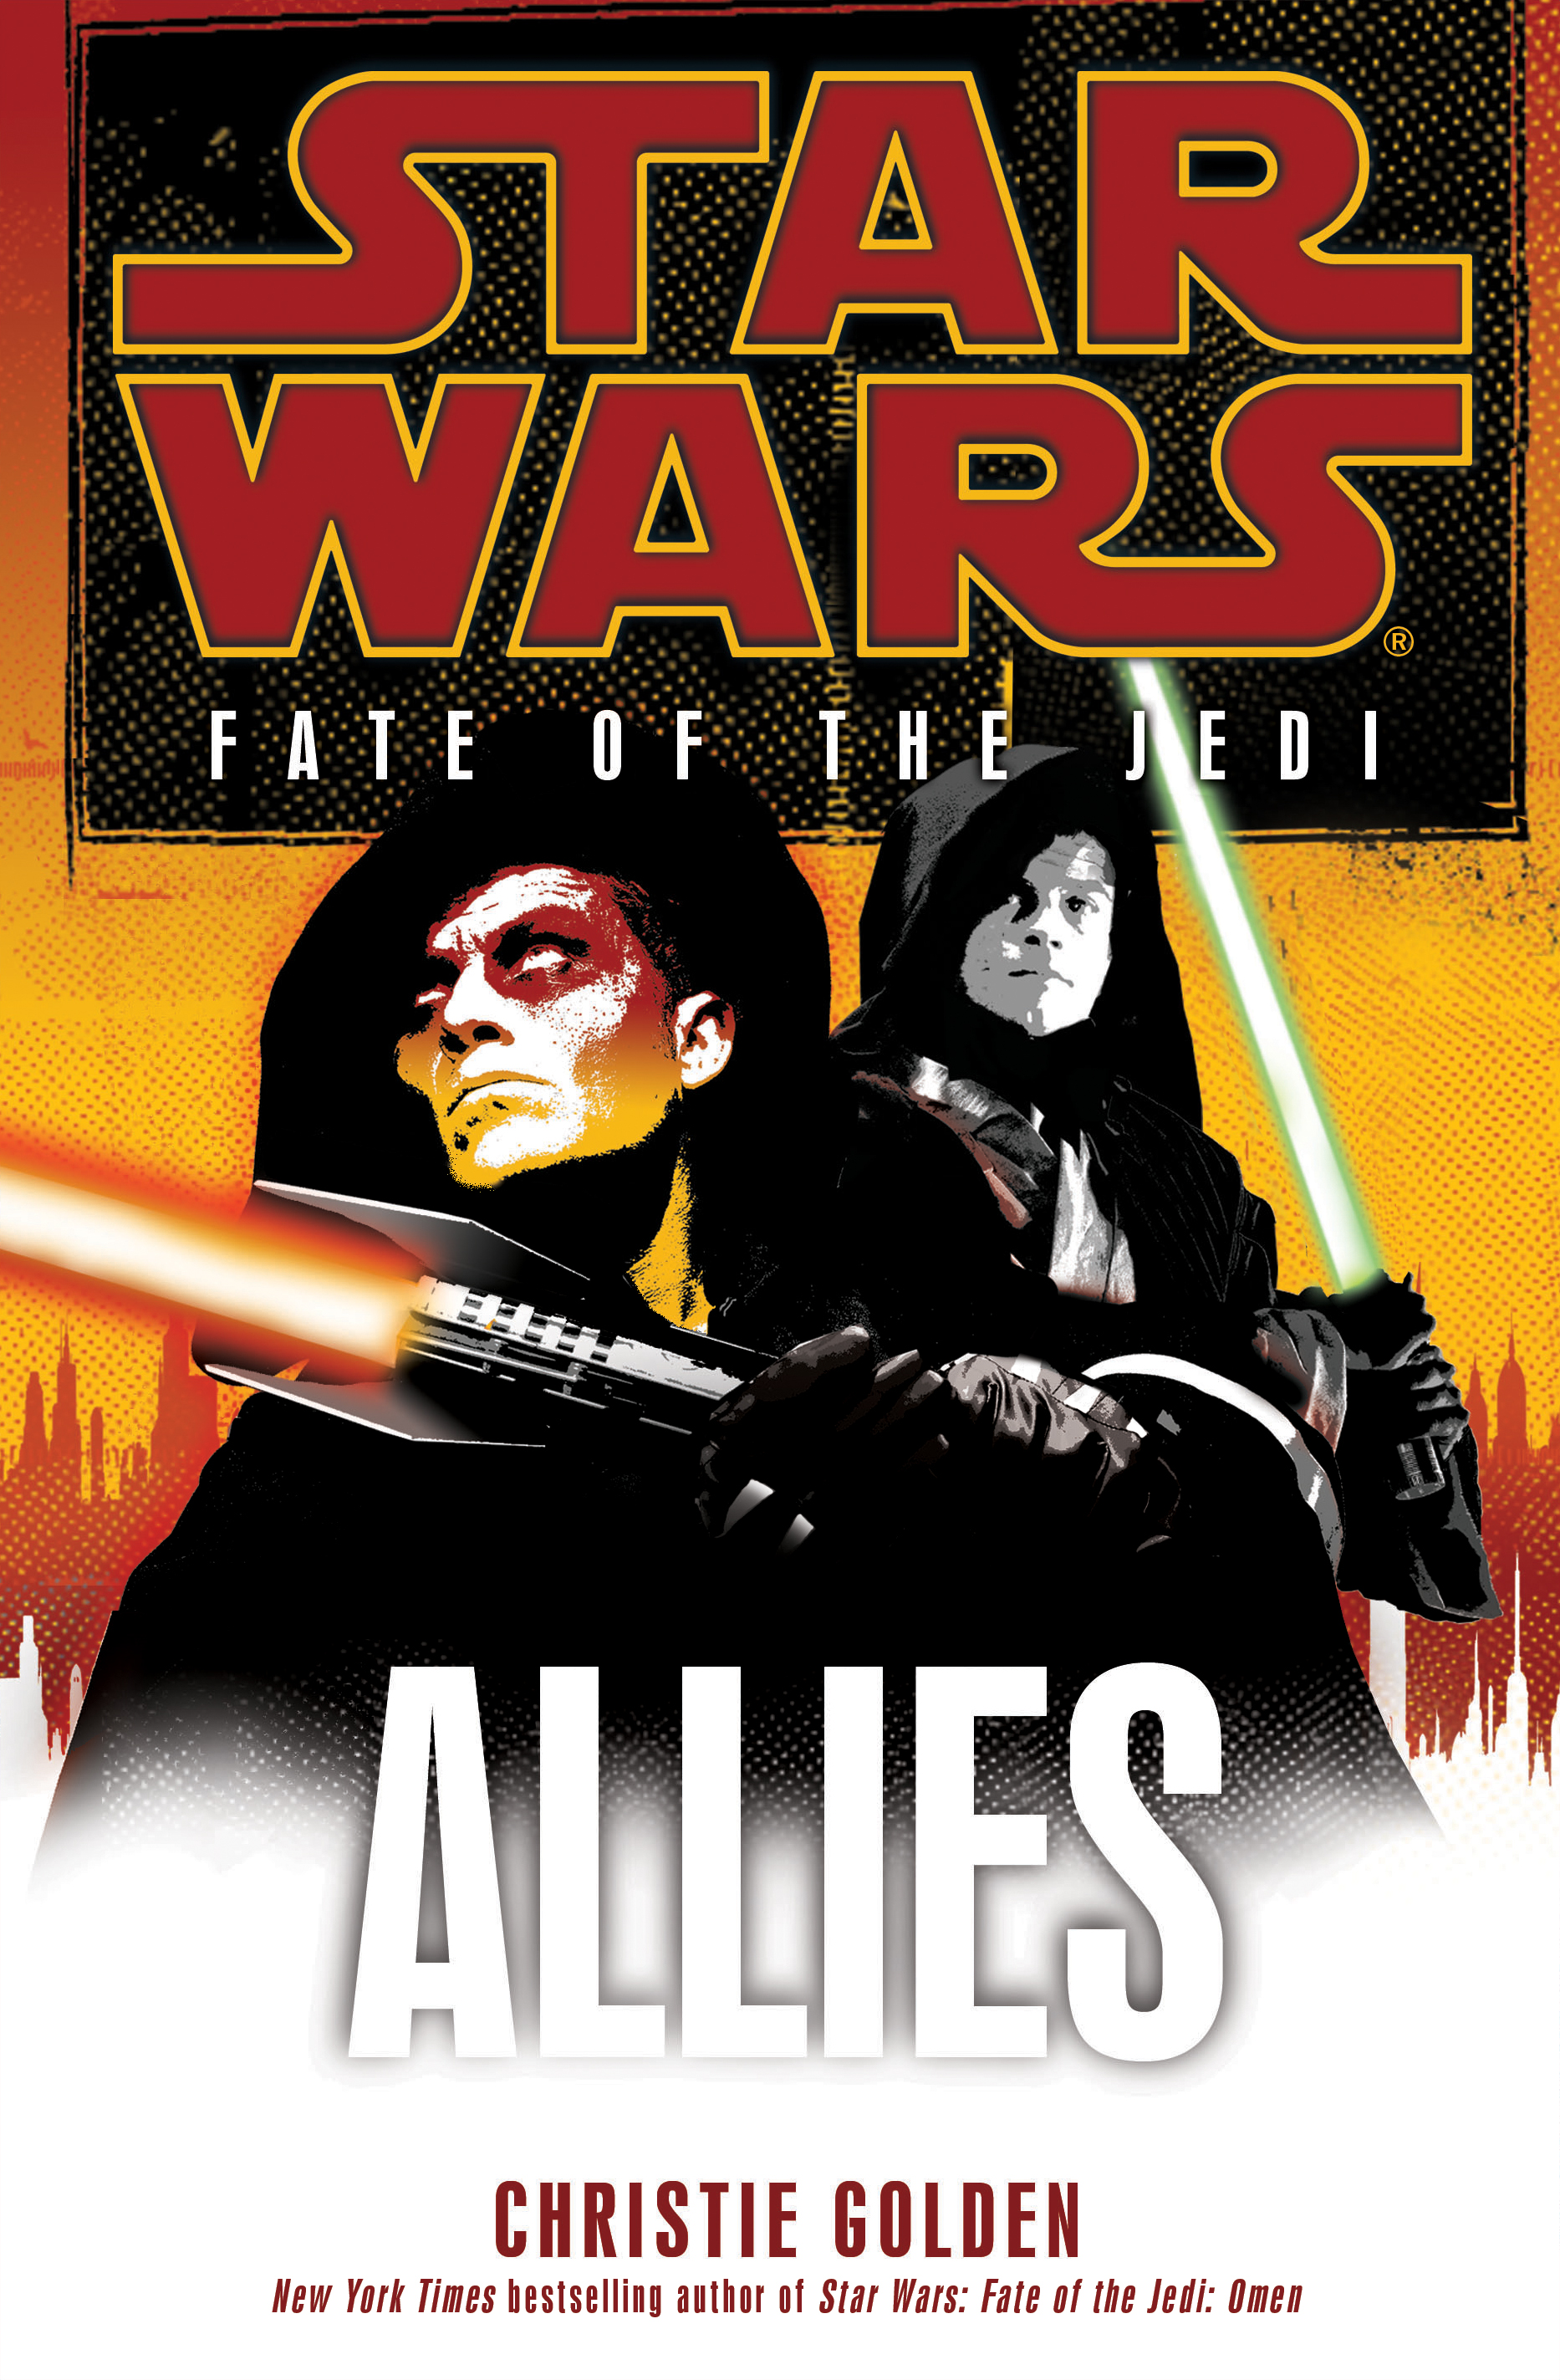 Star Wars Fate of the Jedi: Allies